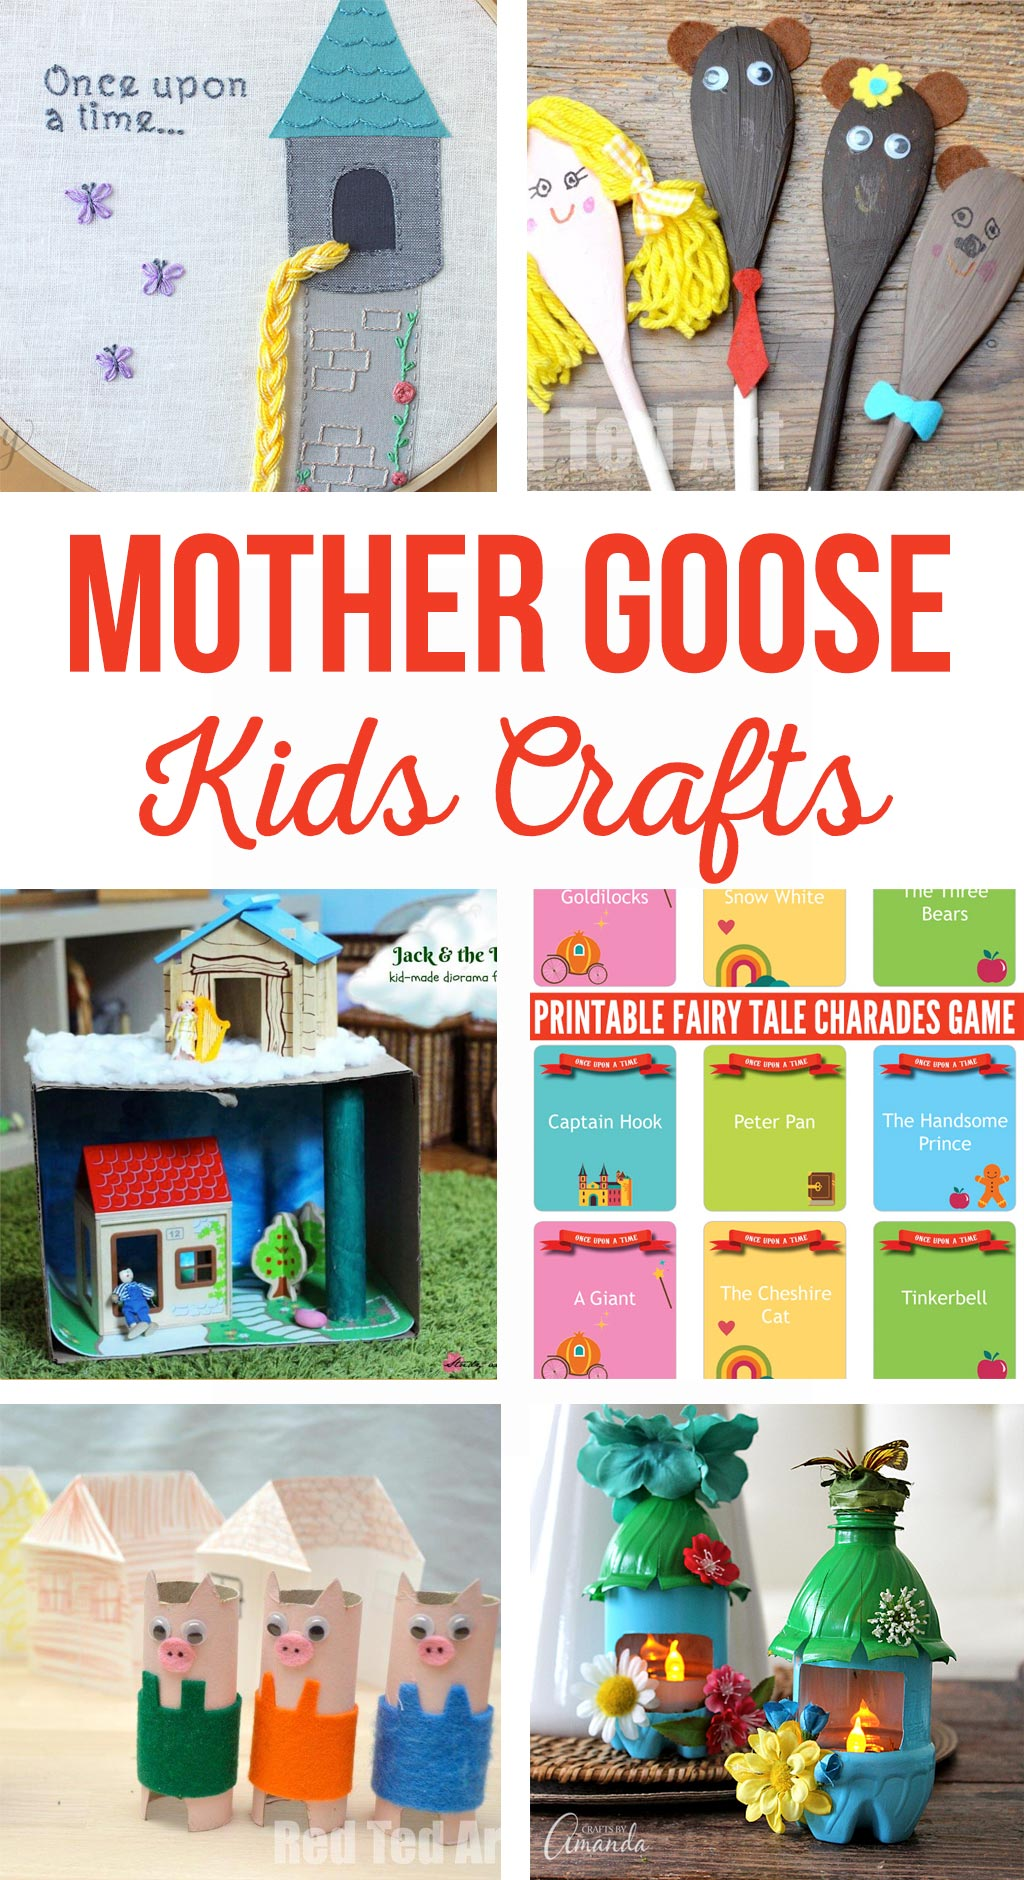 Mother Goose Kids Crafts